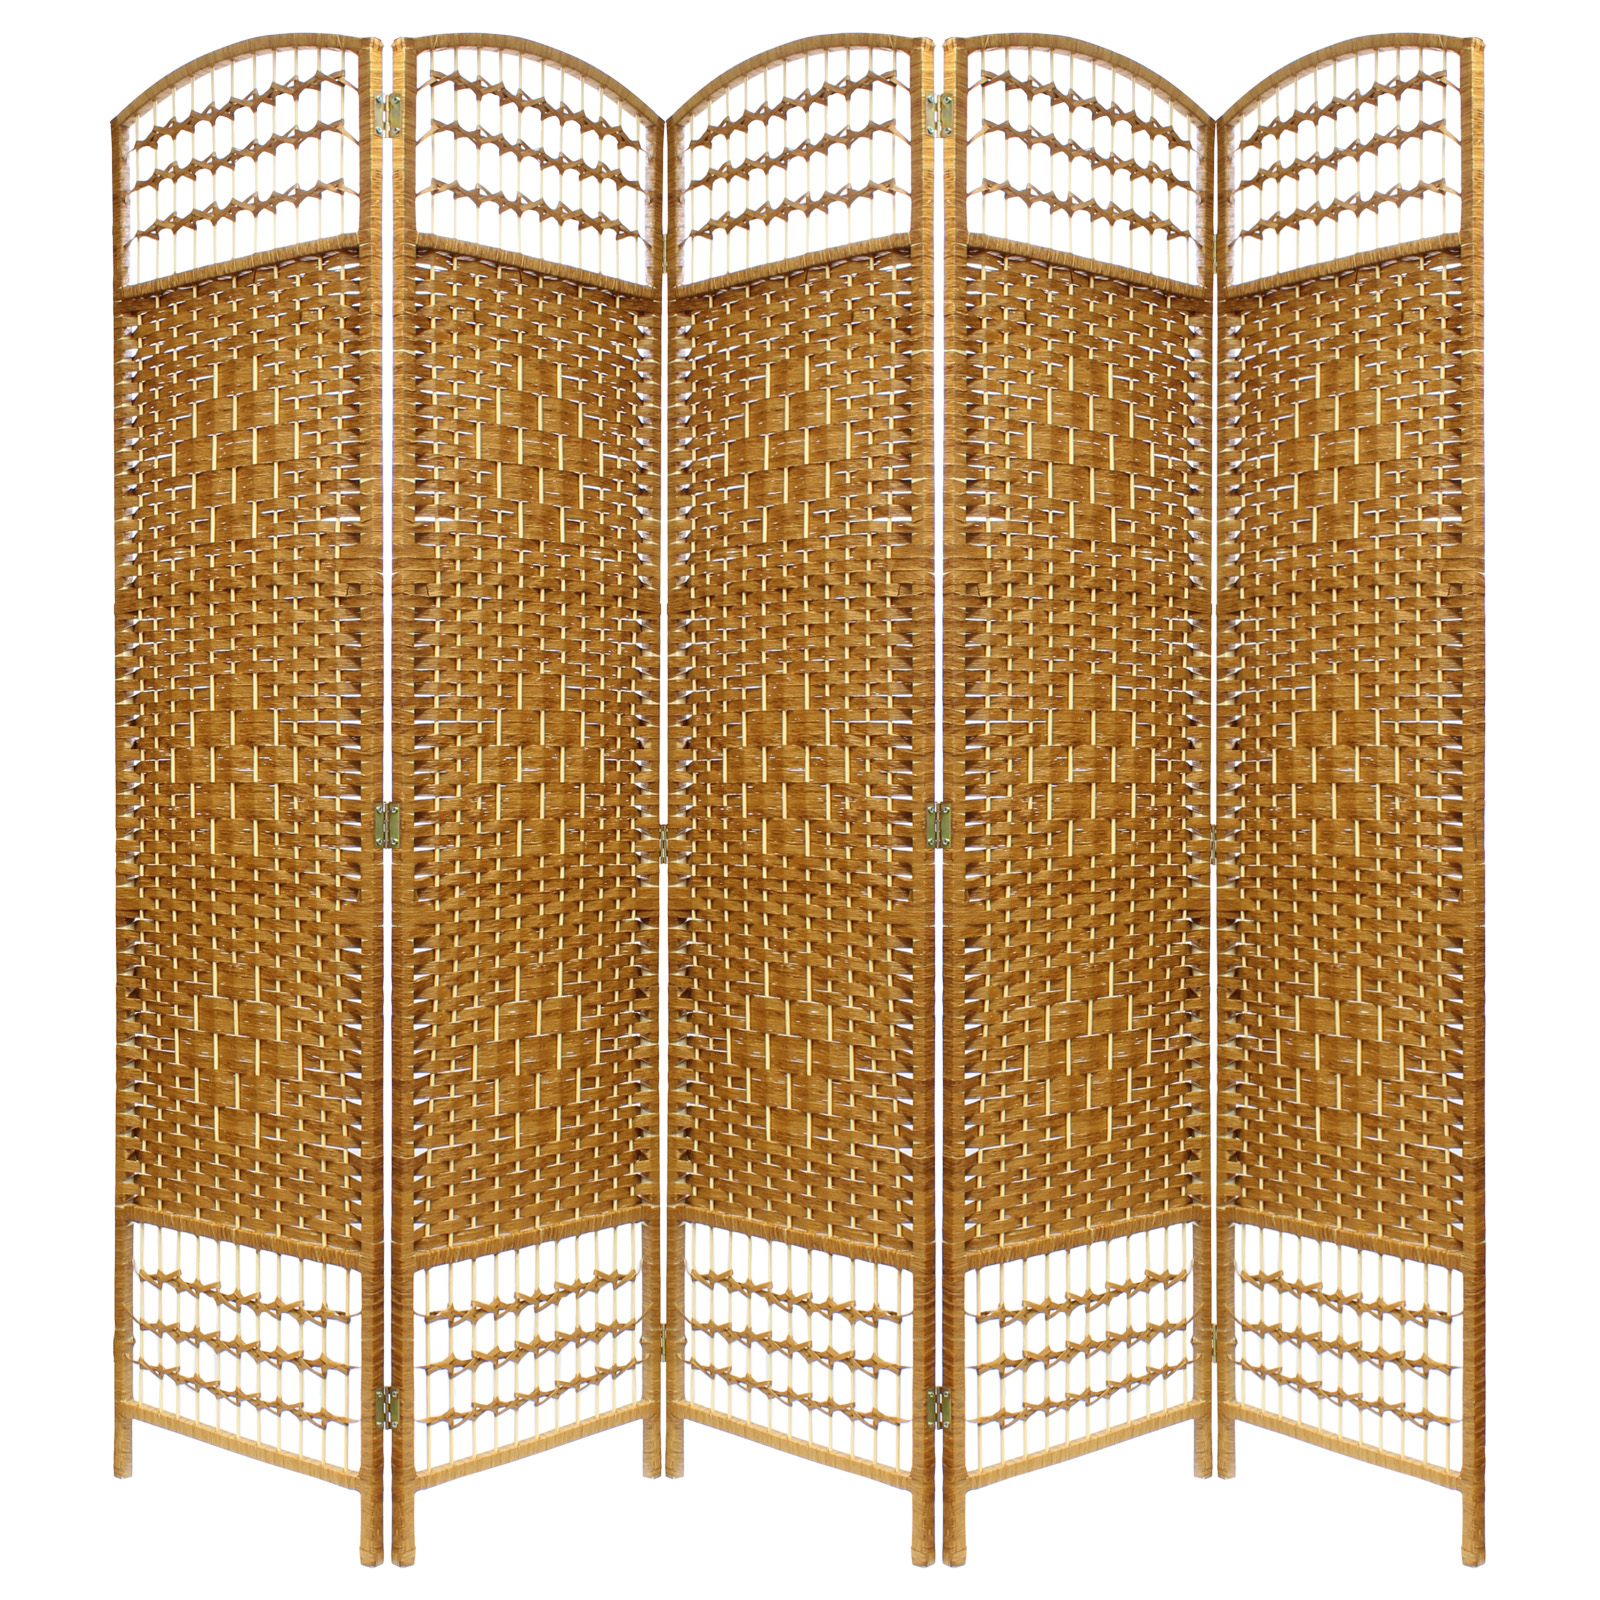 hand made wicker room divider separator privacy screen choice of size colour ebay. Black Bedroom Furniture Sets. Home Design Ideas